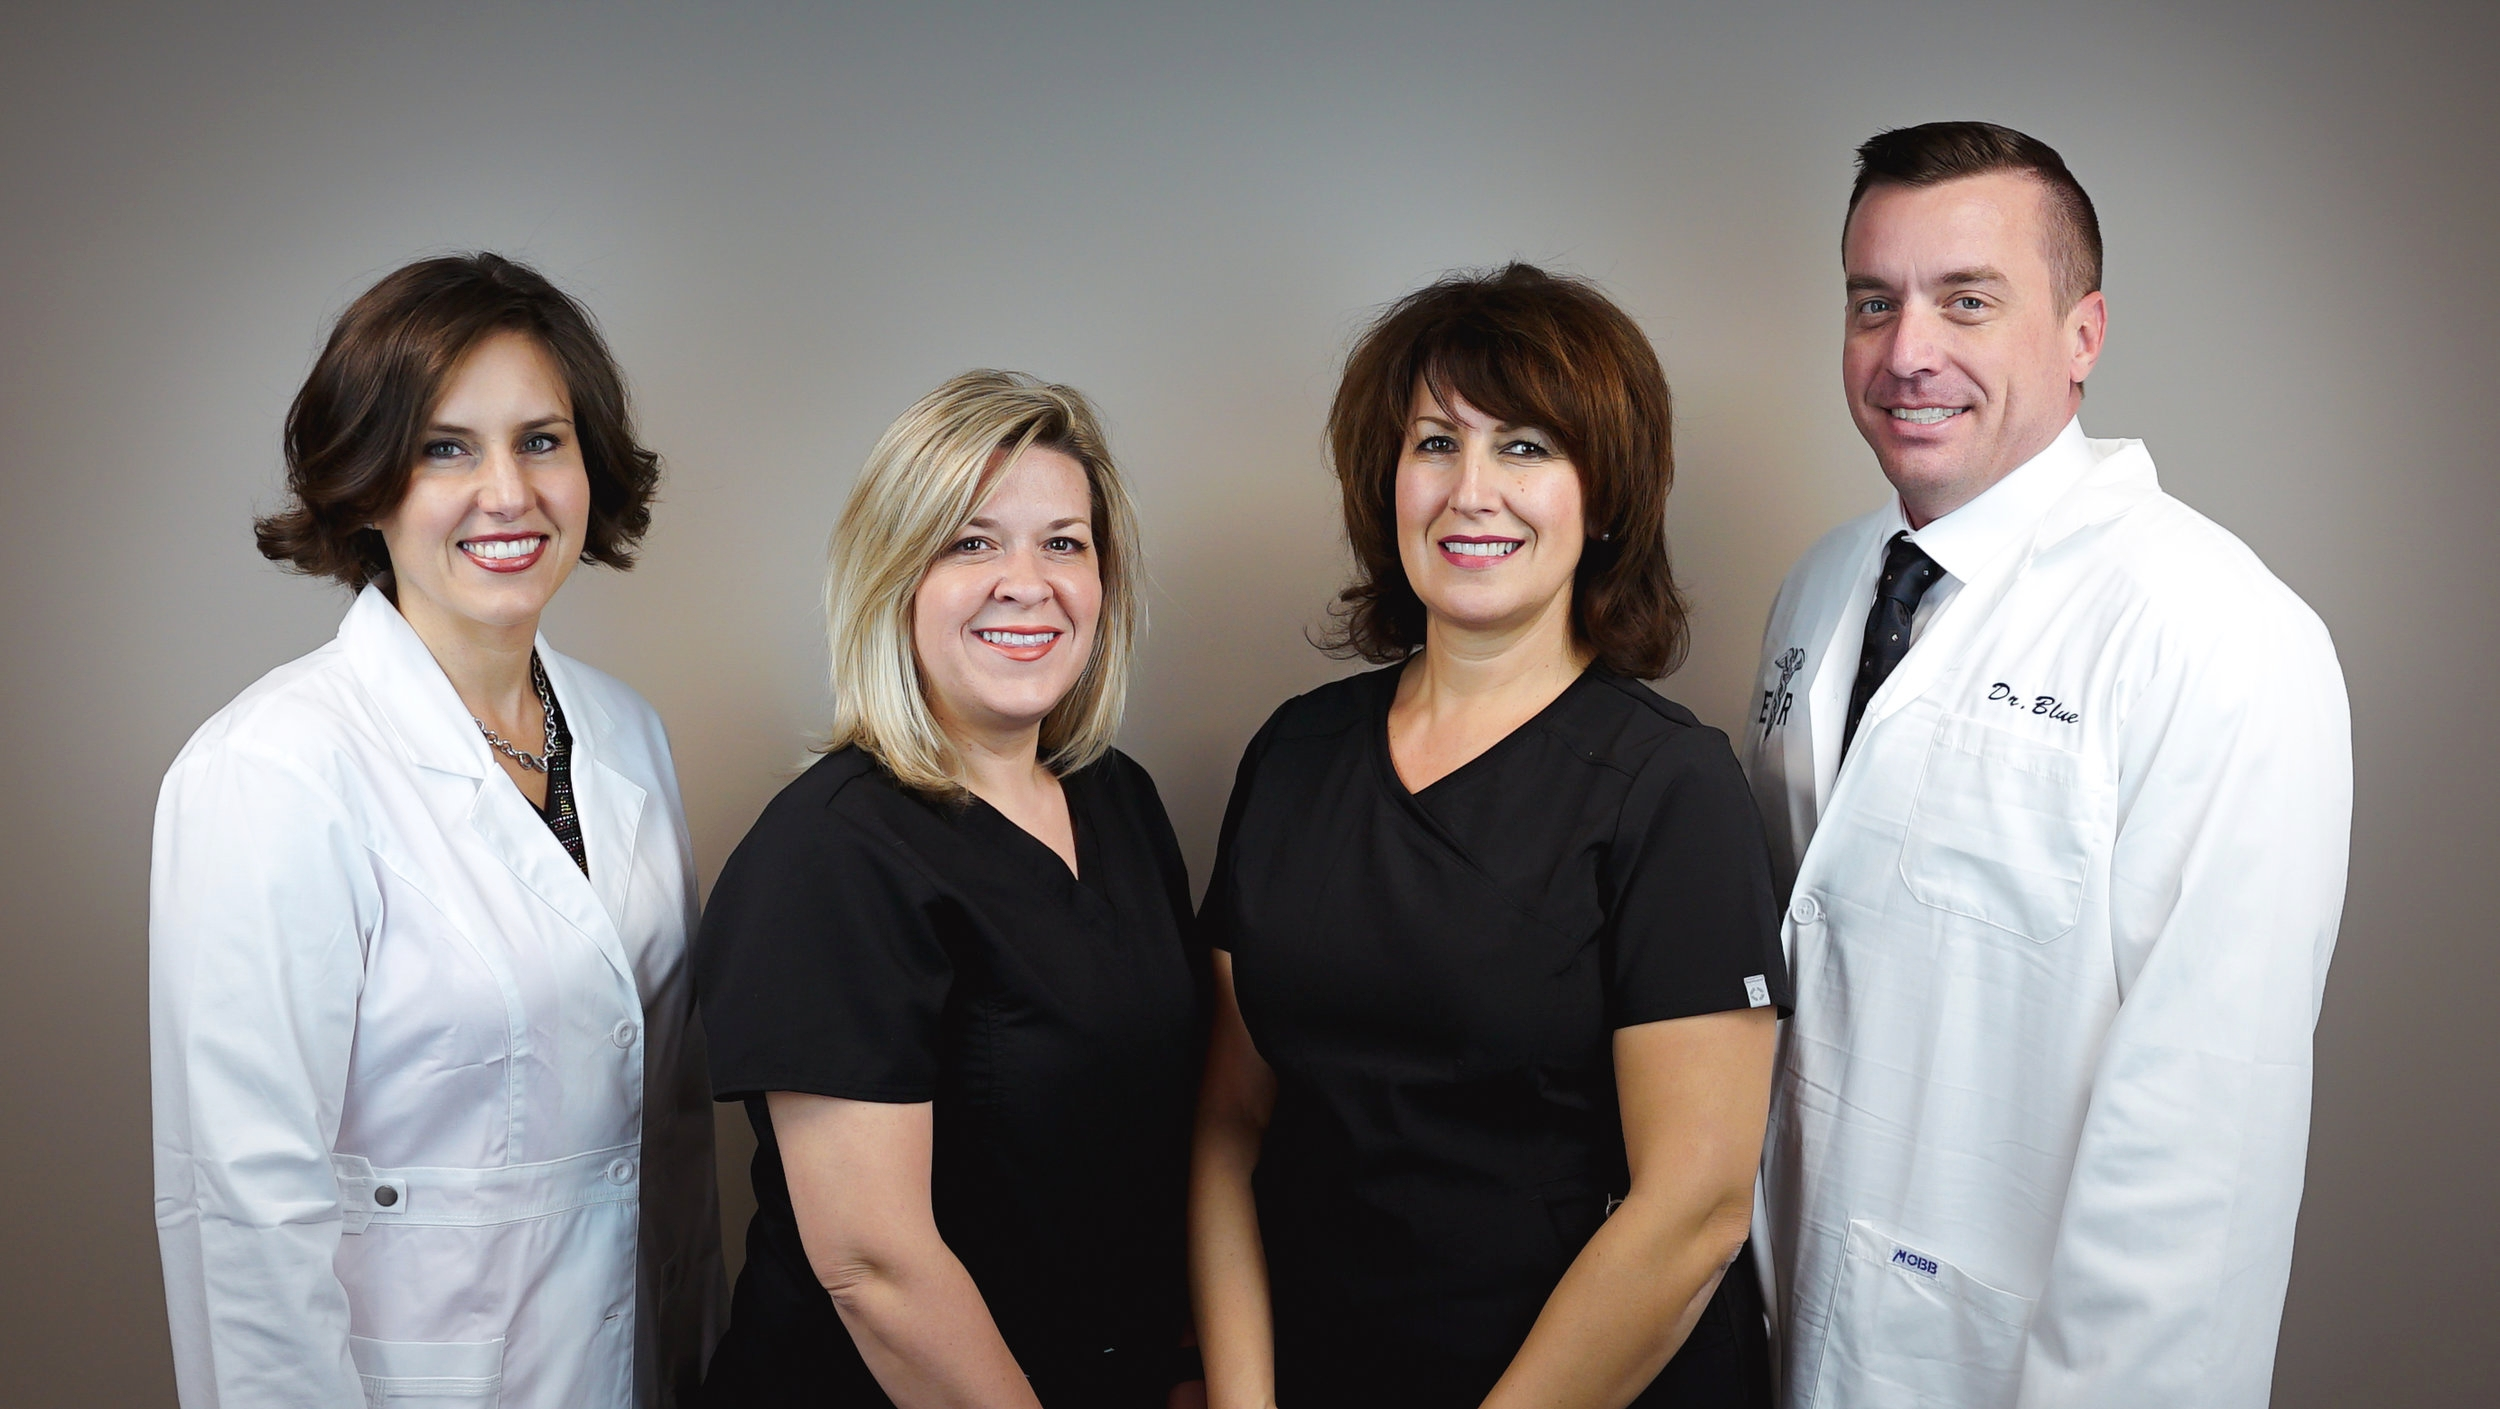 Your Care Starts Here. - call us at (519) 915-7125